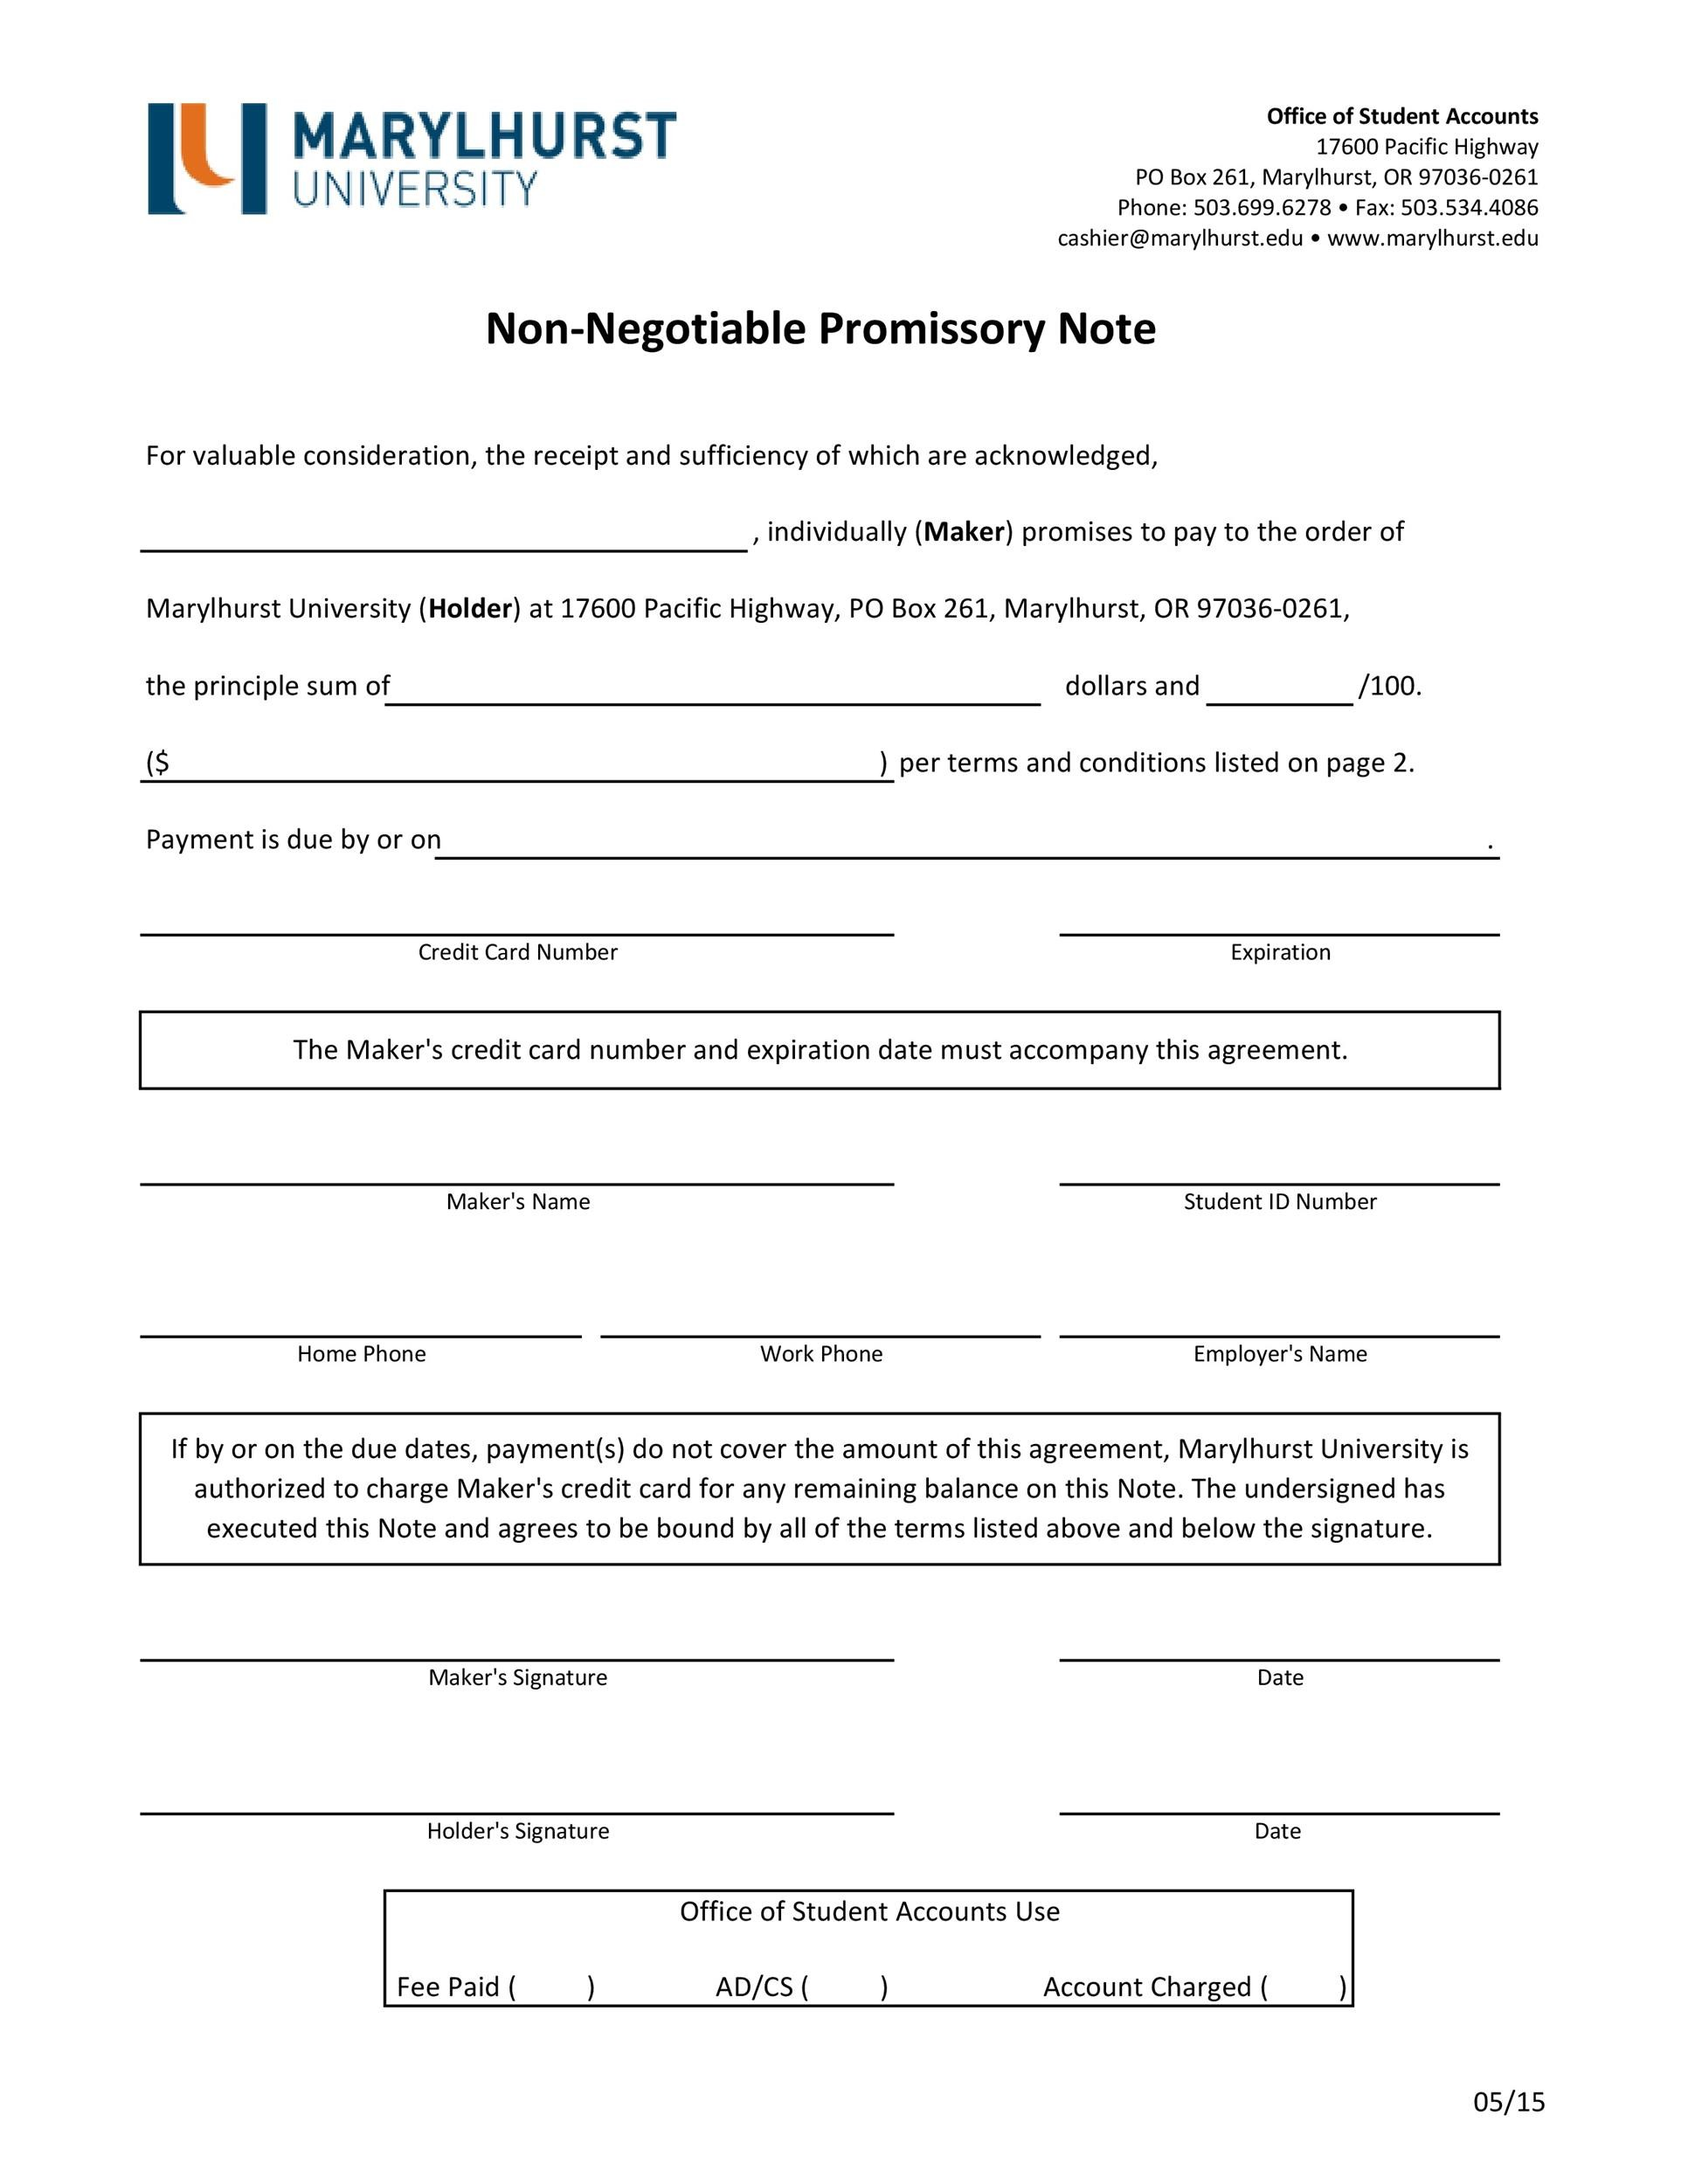 Lovely Printable Promissory Note Template 04 Ideas Free Promissory Note